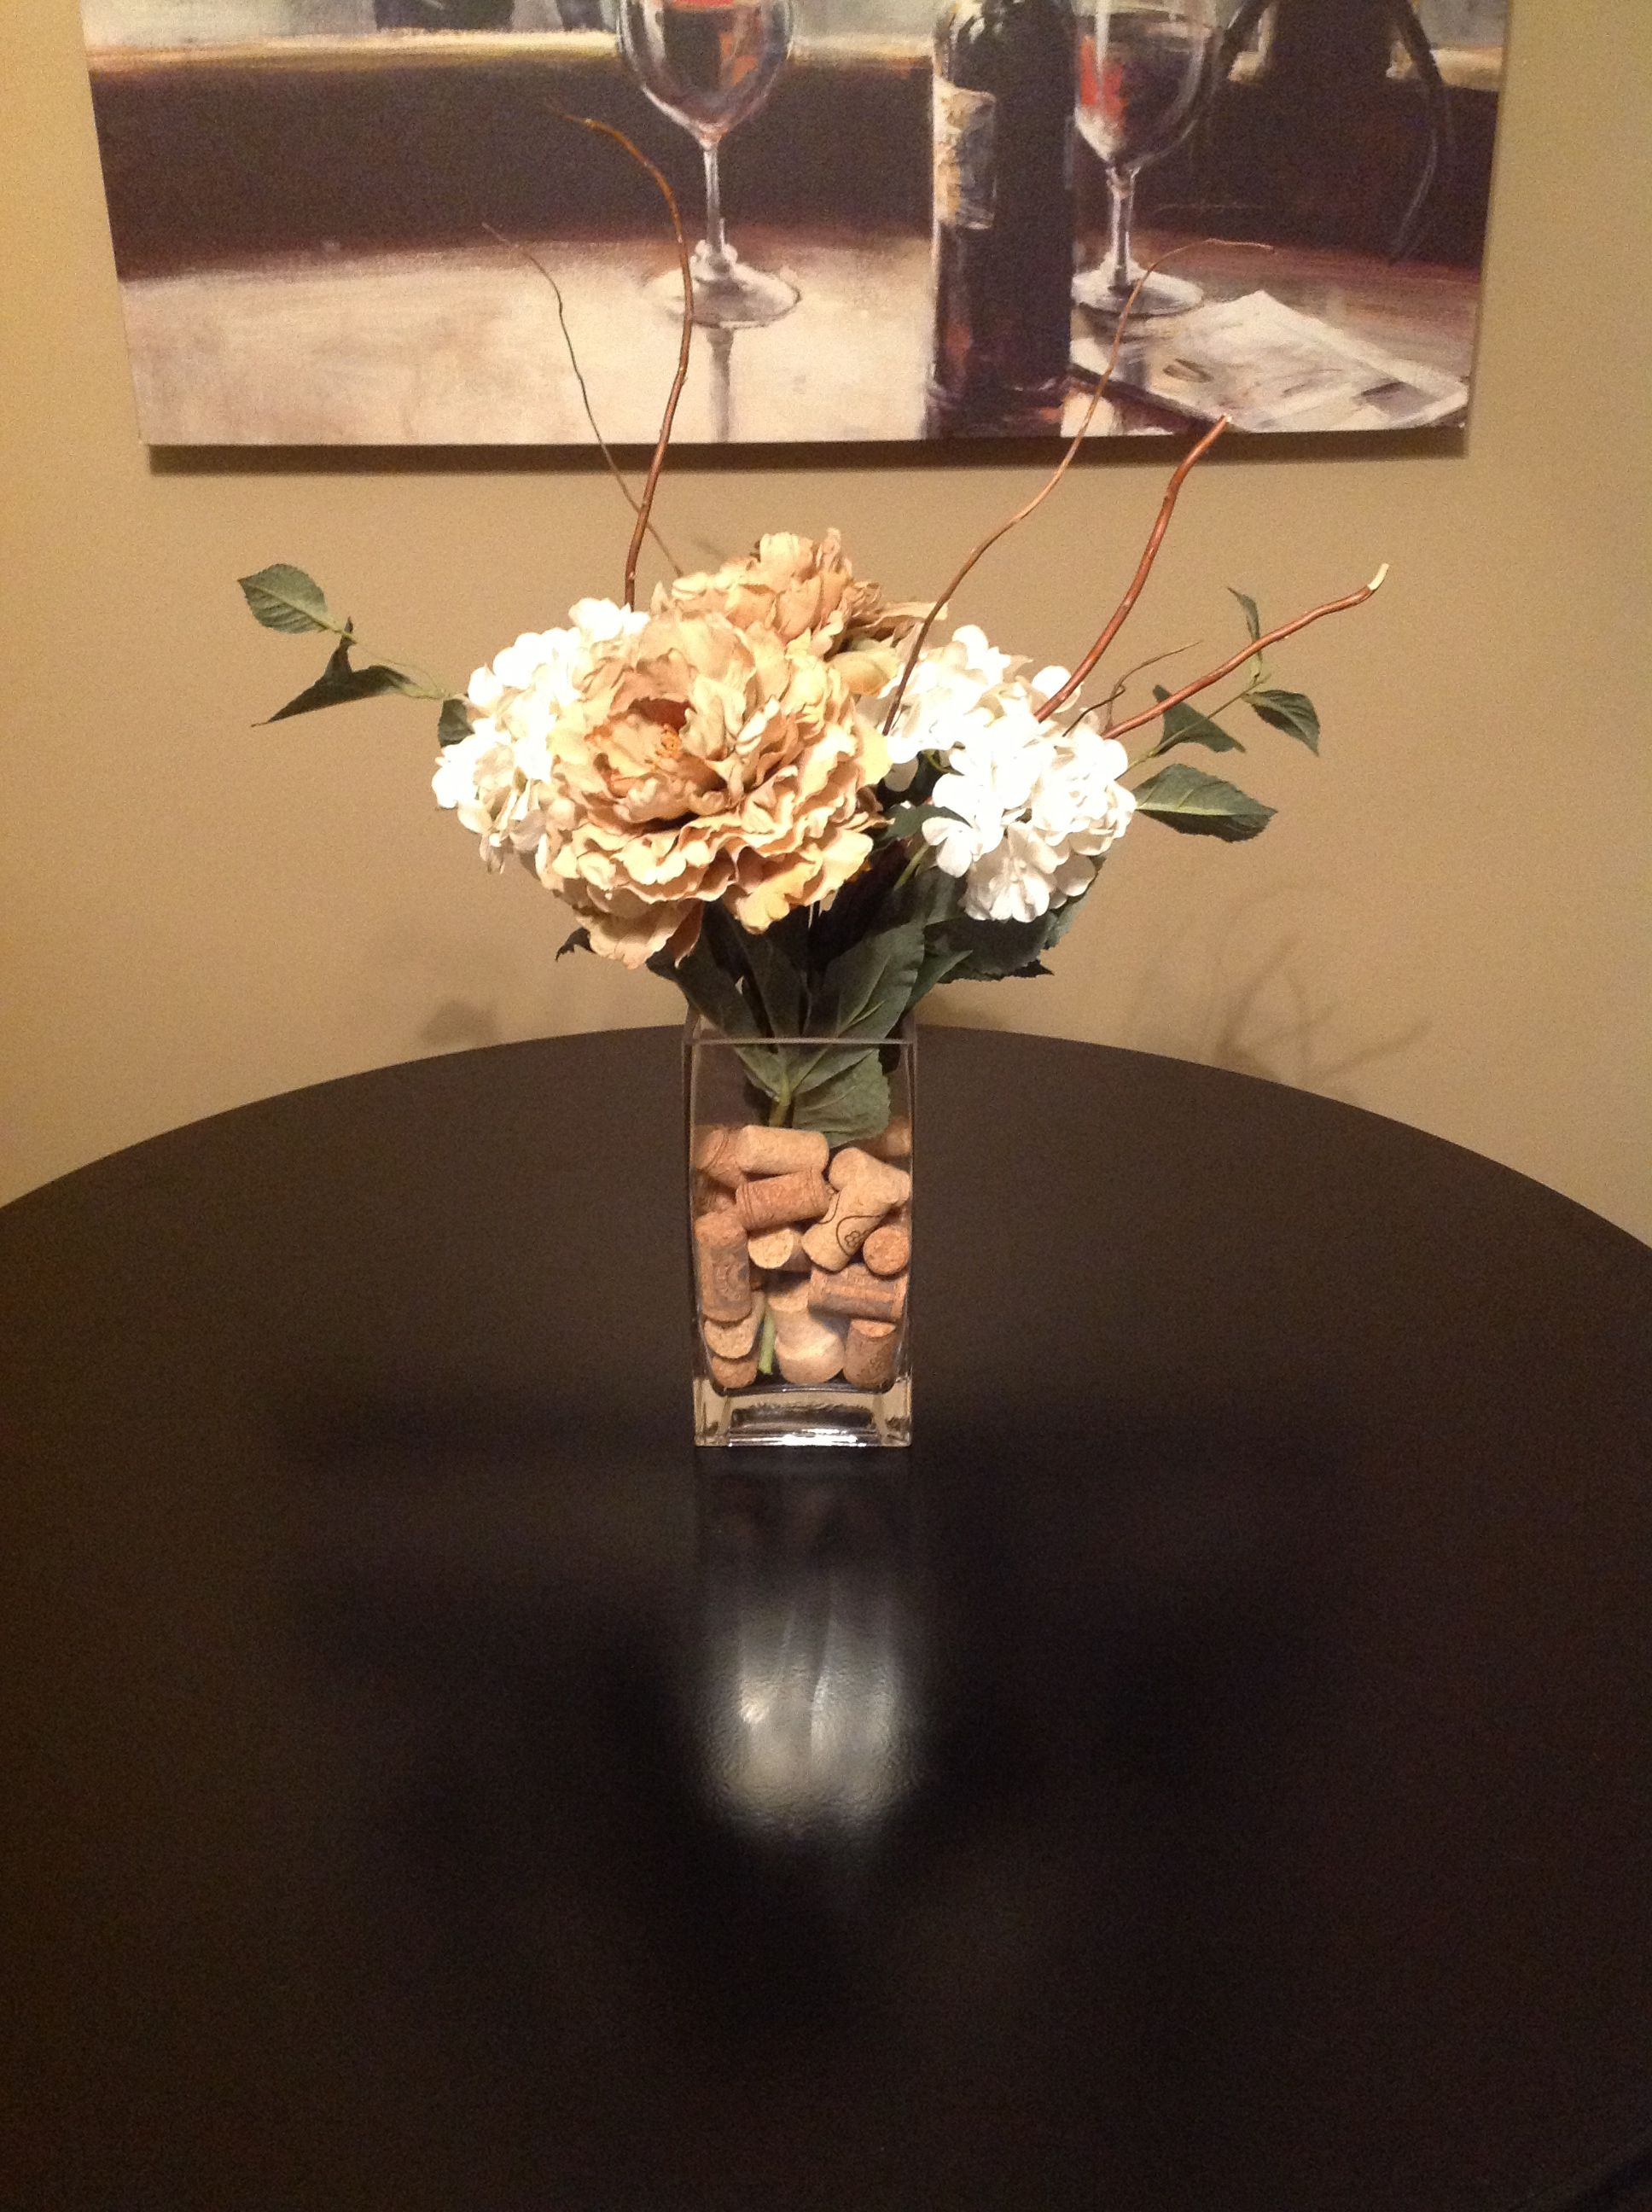 For Kitchen Table Centerpieces Centerpiece For Kitchen Table Bought Vase Flowers And Sticks